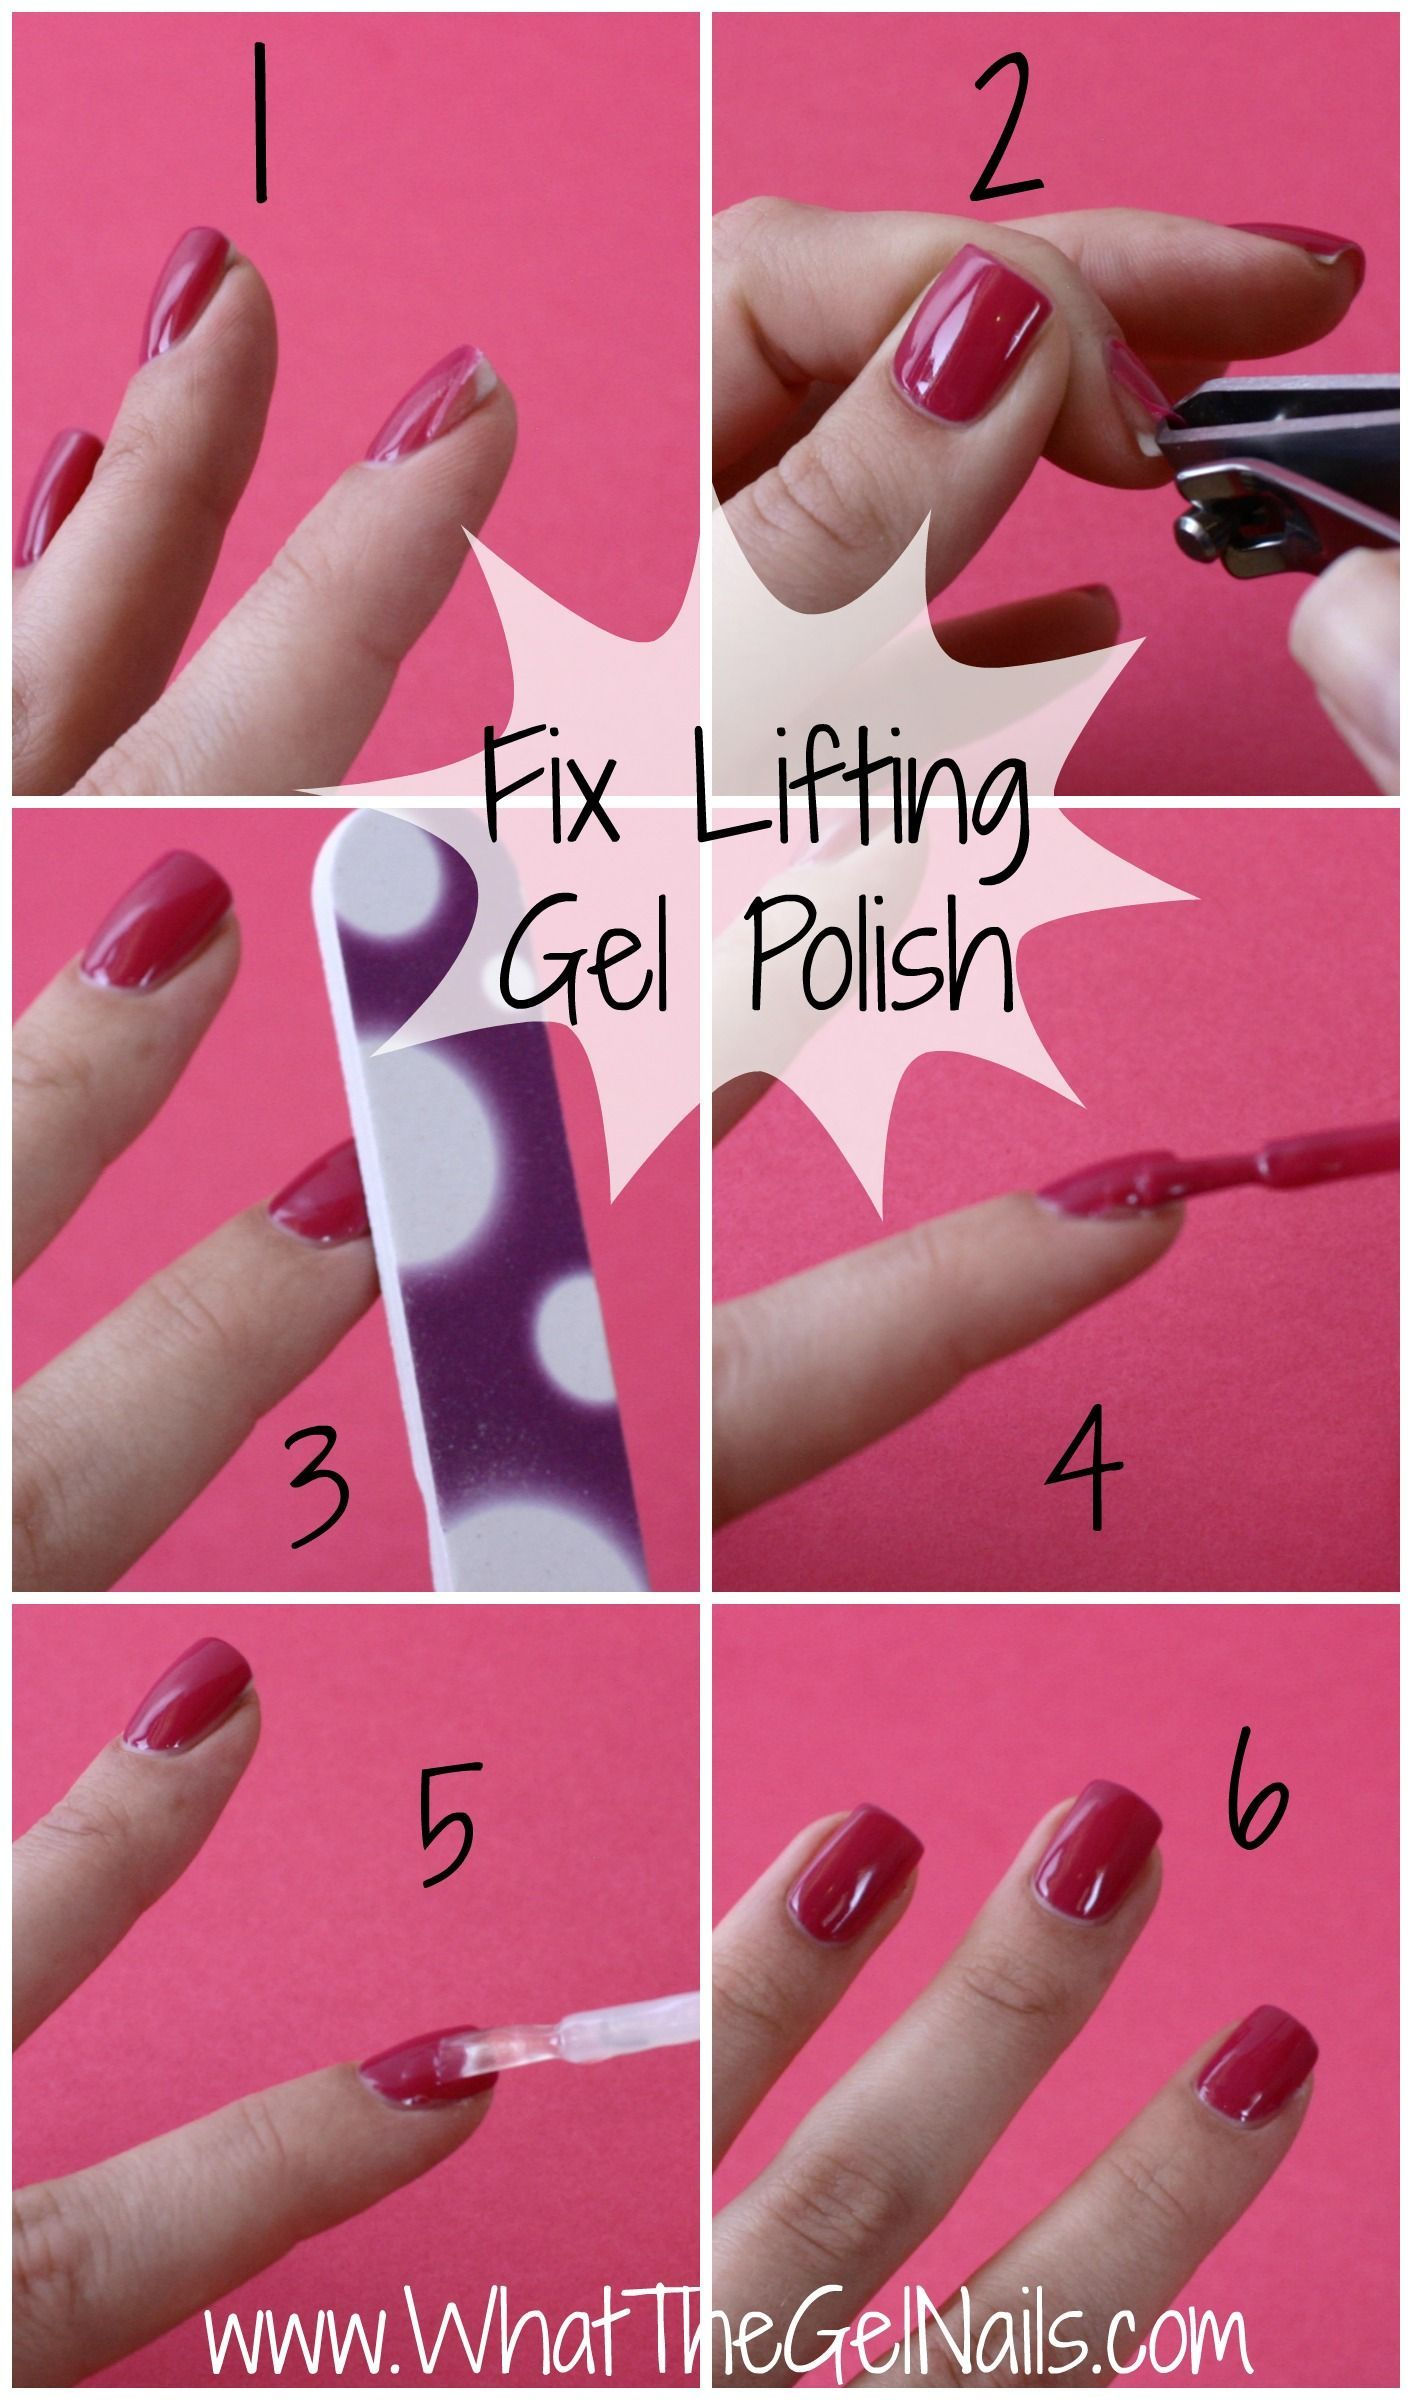 Pin On Art For Gel Nails